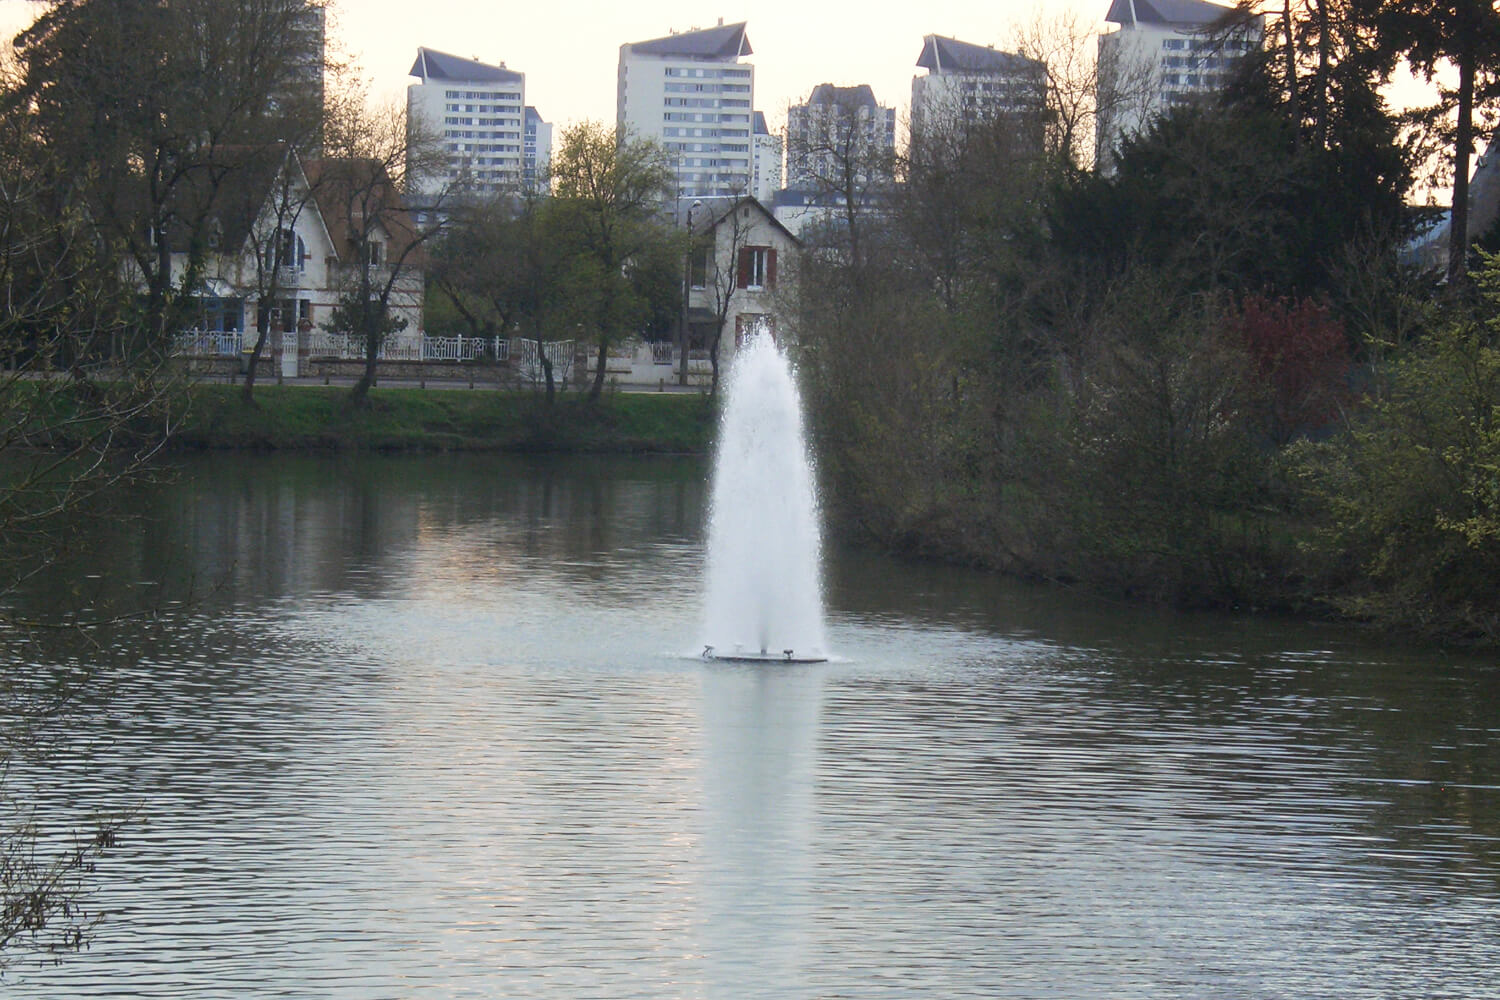 One of Otterbine's Polaris Aerating Fountains